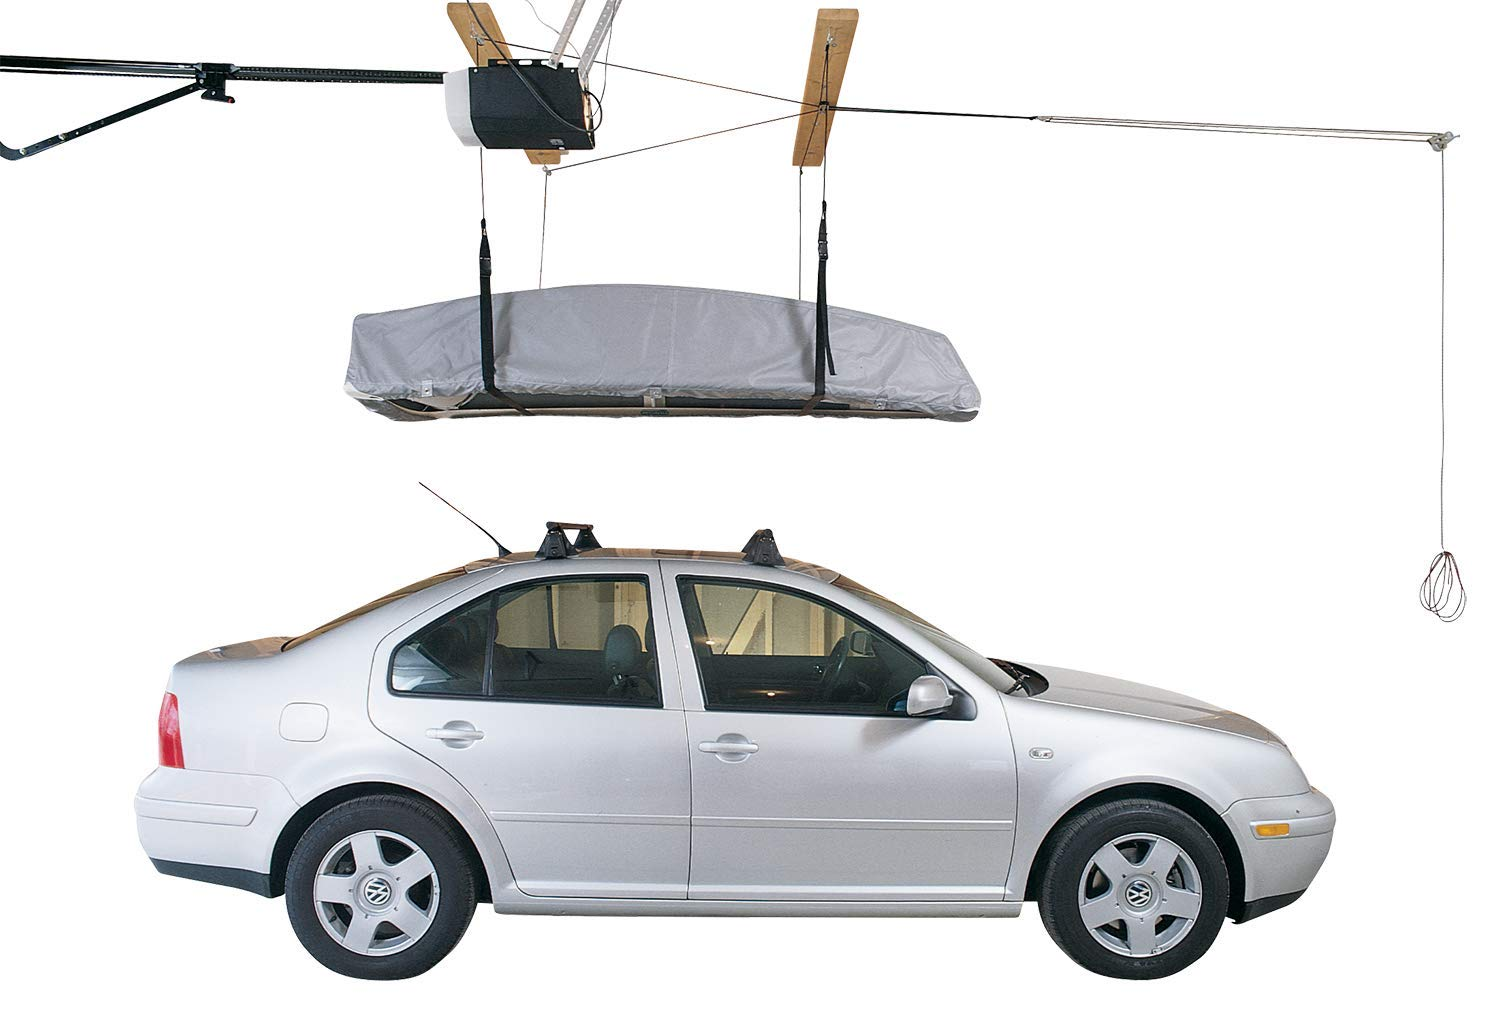 HARKEN Cargo Box Garage Storage Ceiling Hoist | 4 Point System | 4:1 Mechanical Advantage | Easy Lift, Single-Person Operation, Rooftop, Hanger, Pulley, Carrier by HARKEN